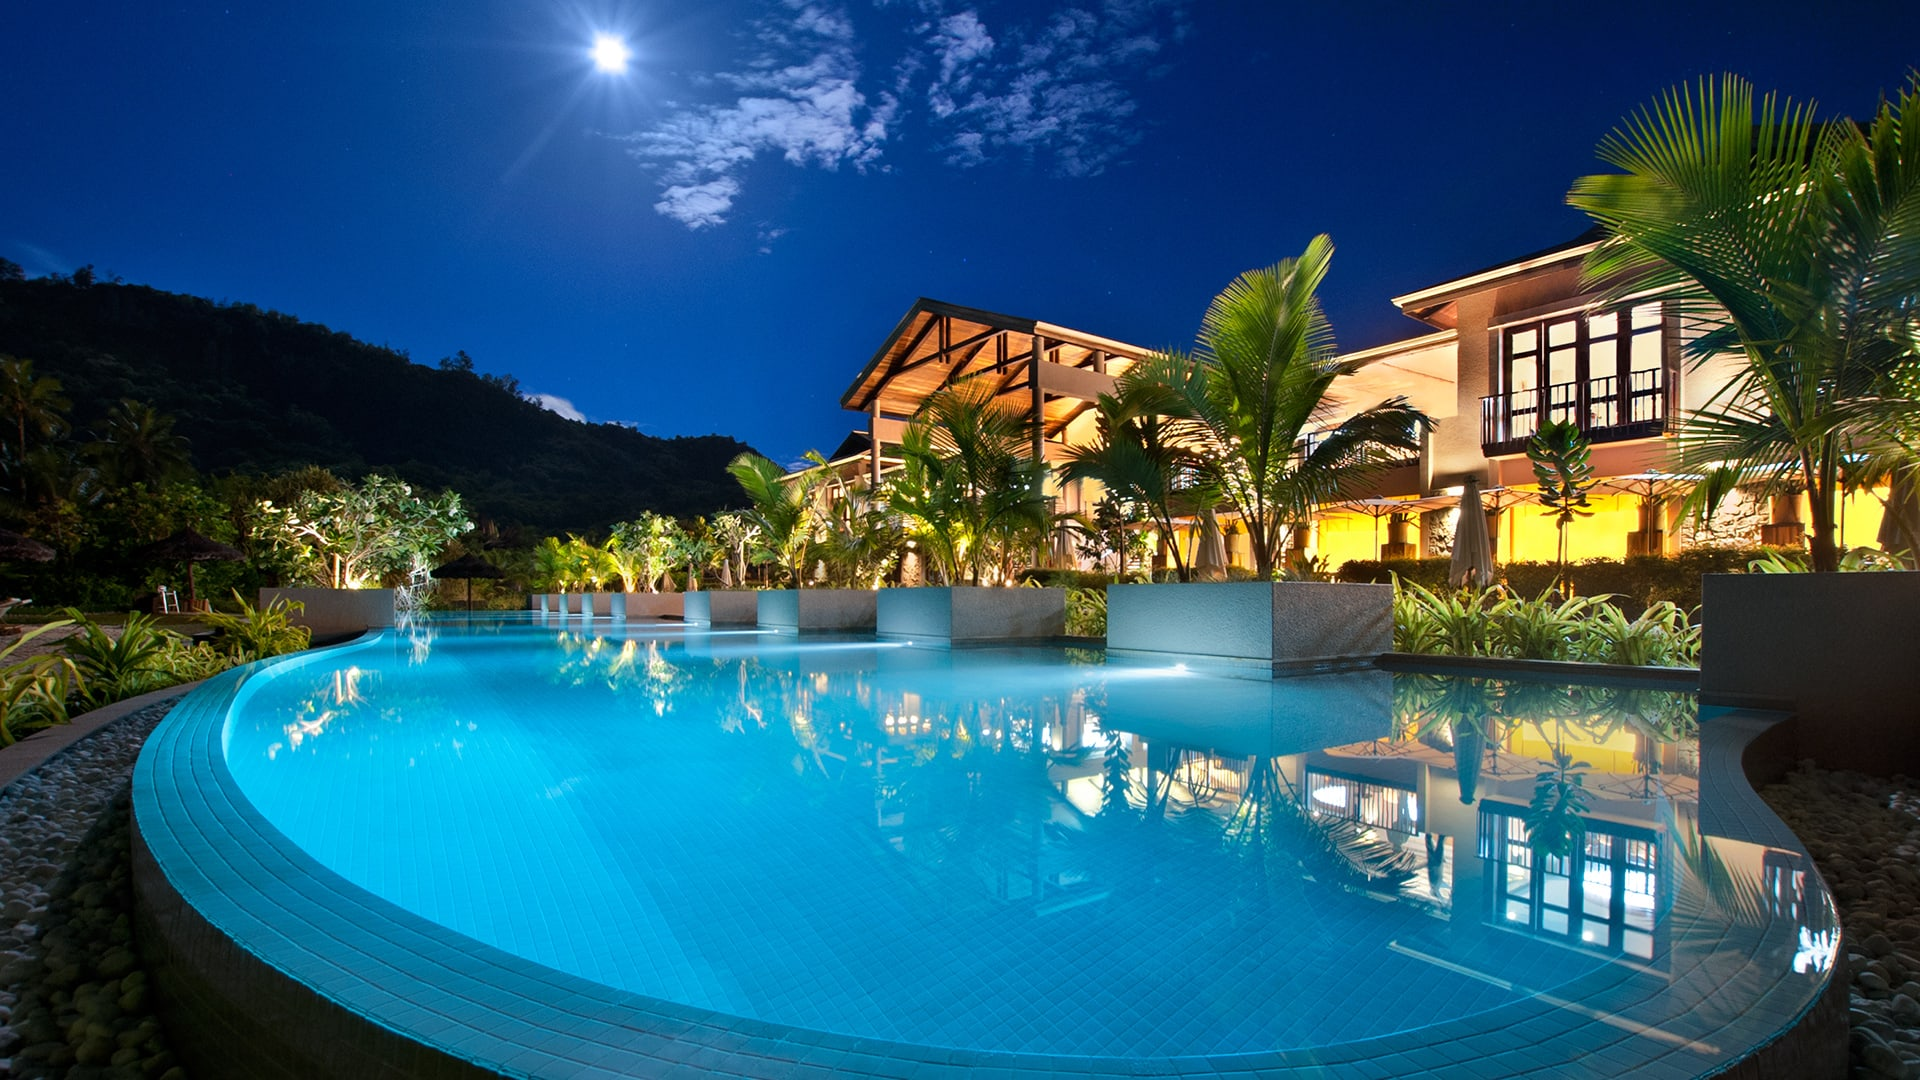 Kempinski seychelles resort baie lazare the seychelles for Beautiful accommodation